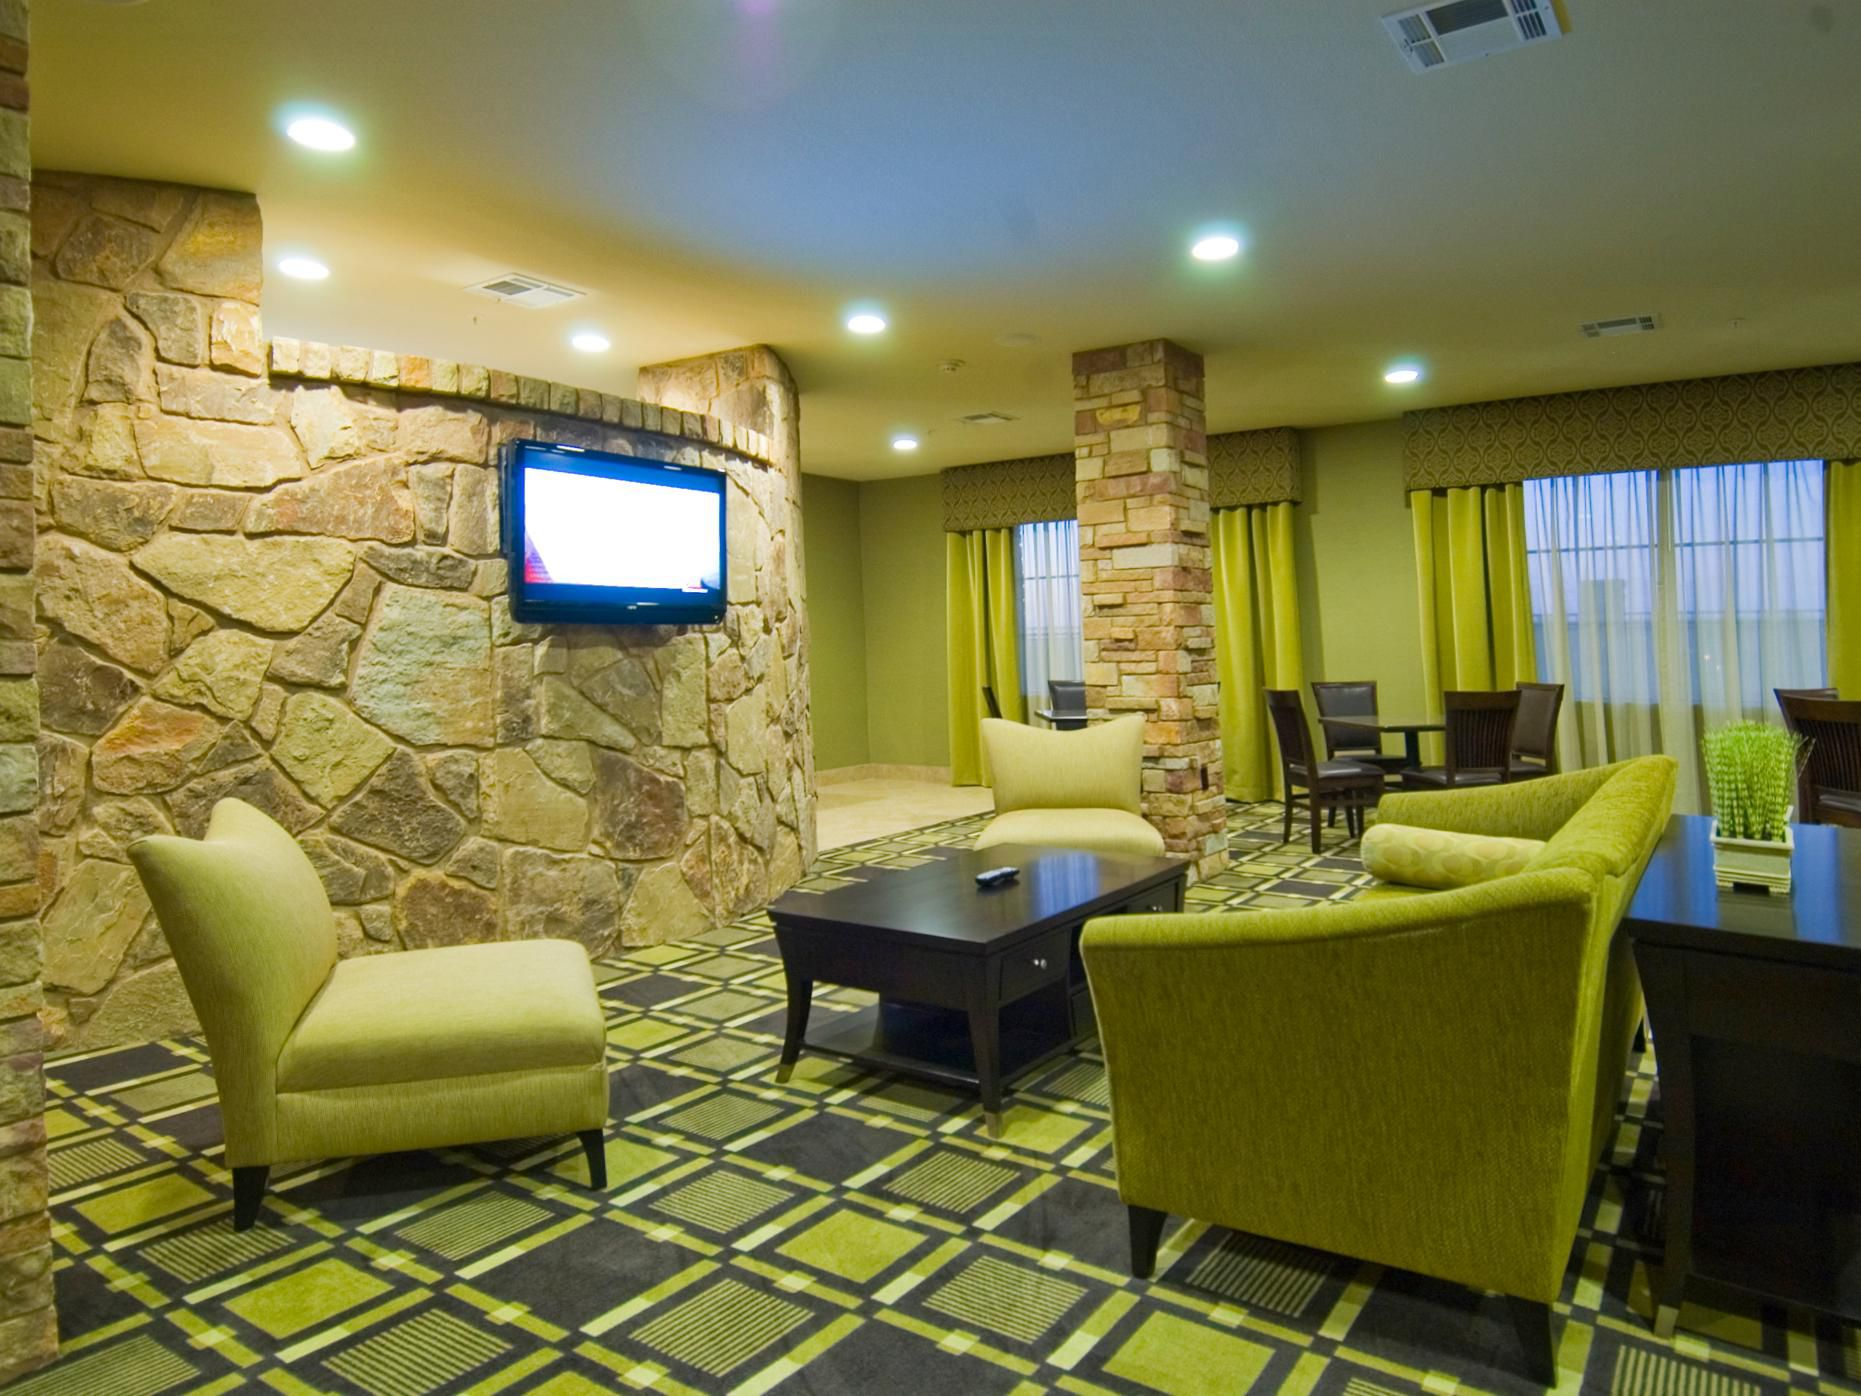 Marble Falls, TX Holiday Inn Express Hotel Great Room